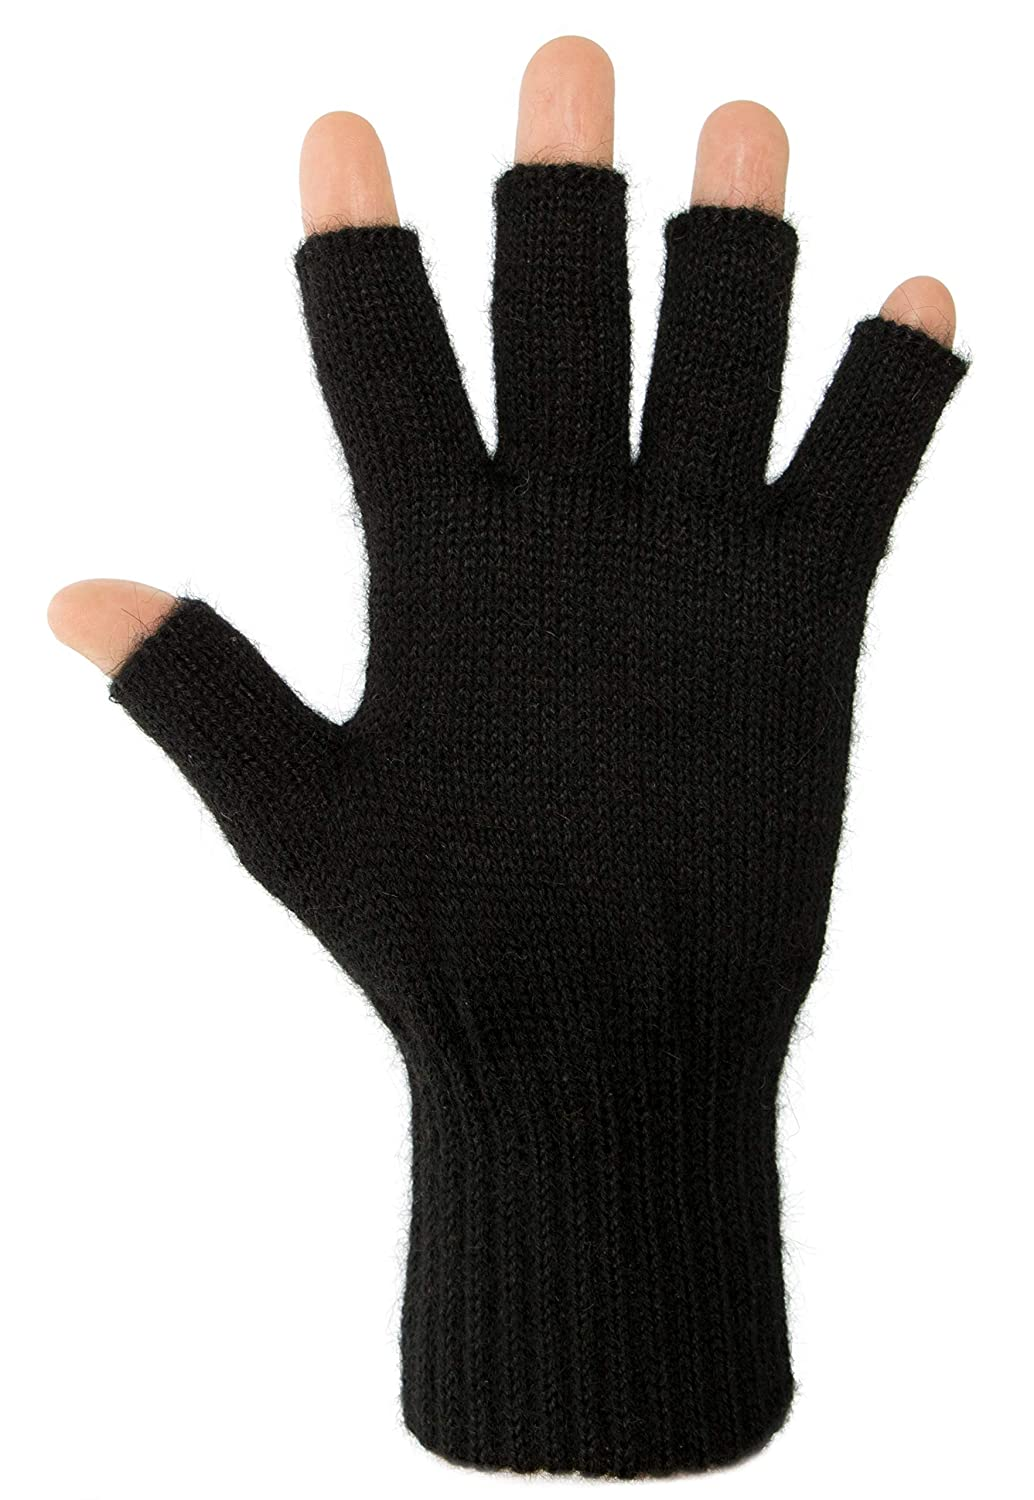 DARN WARM Alpaca FINGERLESS Gloves - BEST NATURAL SOLUTION for COLD HANDS - for WOMEN AND MEN